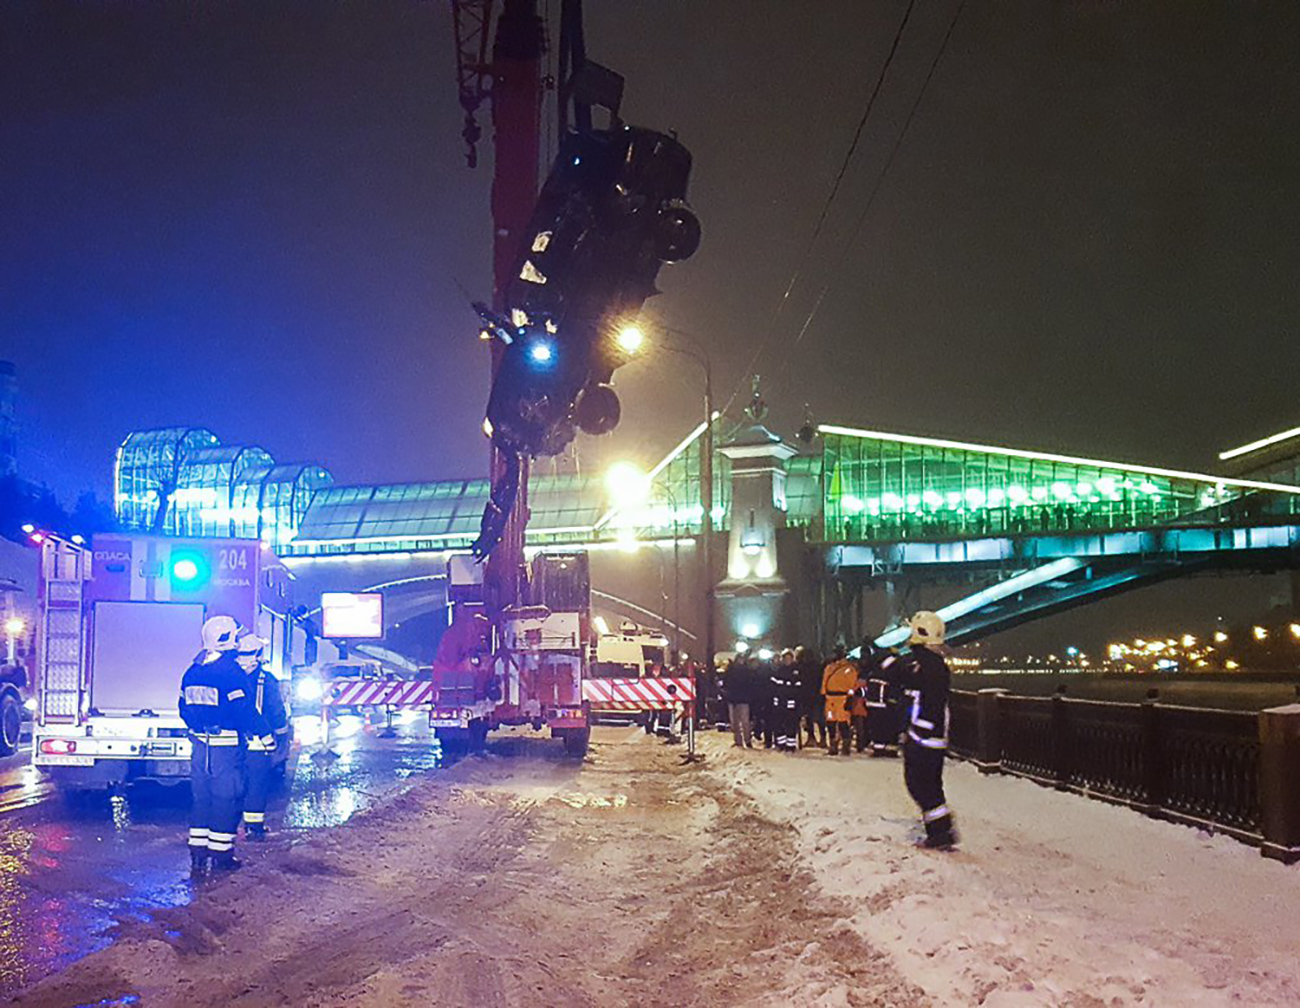 The policeman was later diagnosed with hypothermia and lacerations on both wrists. Source: Moskva Agency